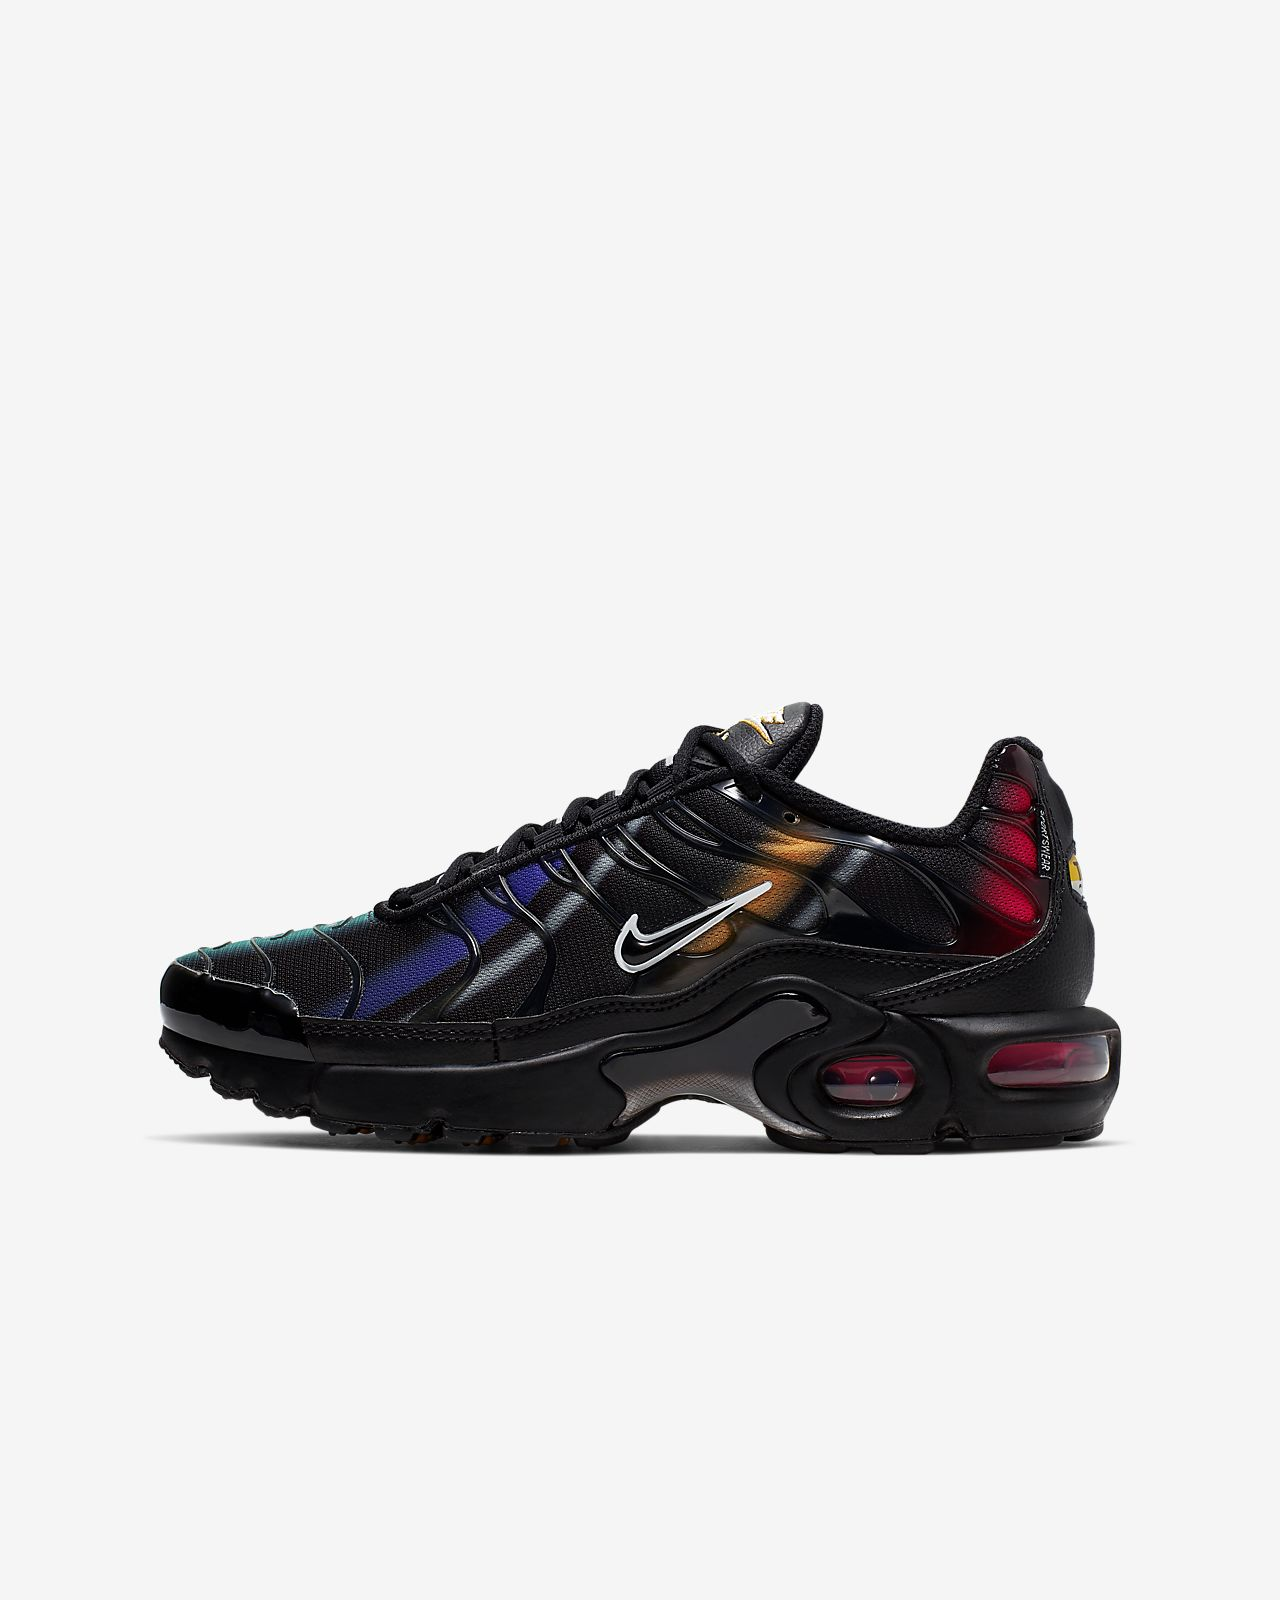 Nike Air Max Plus Game Kinderschoen